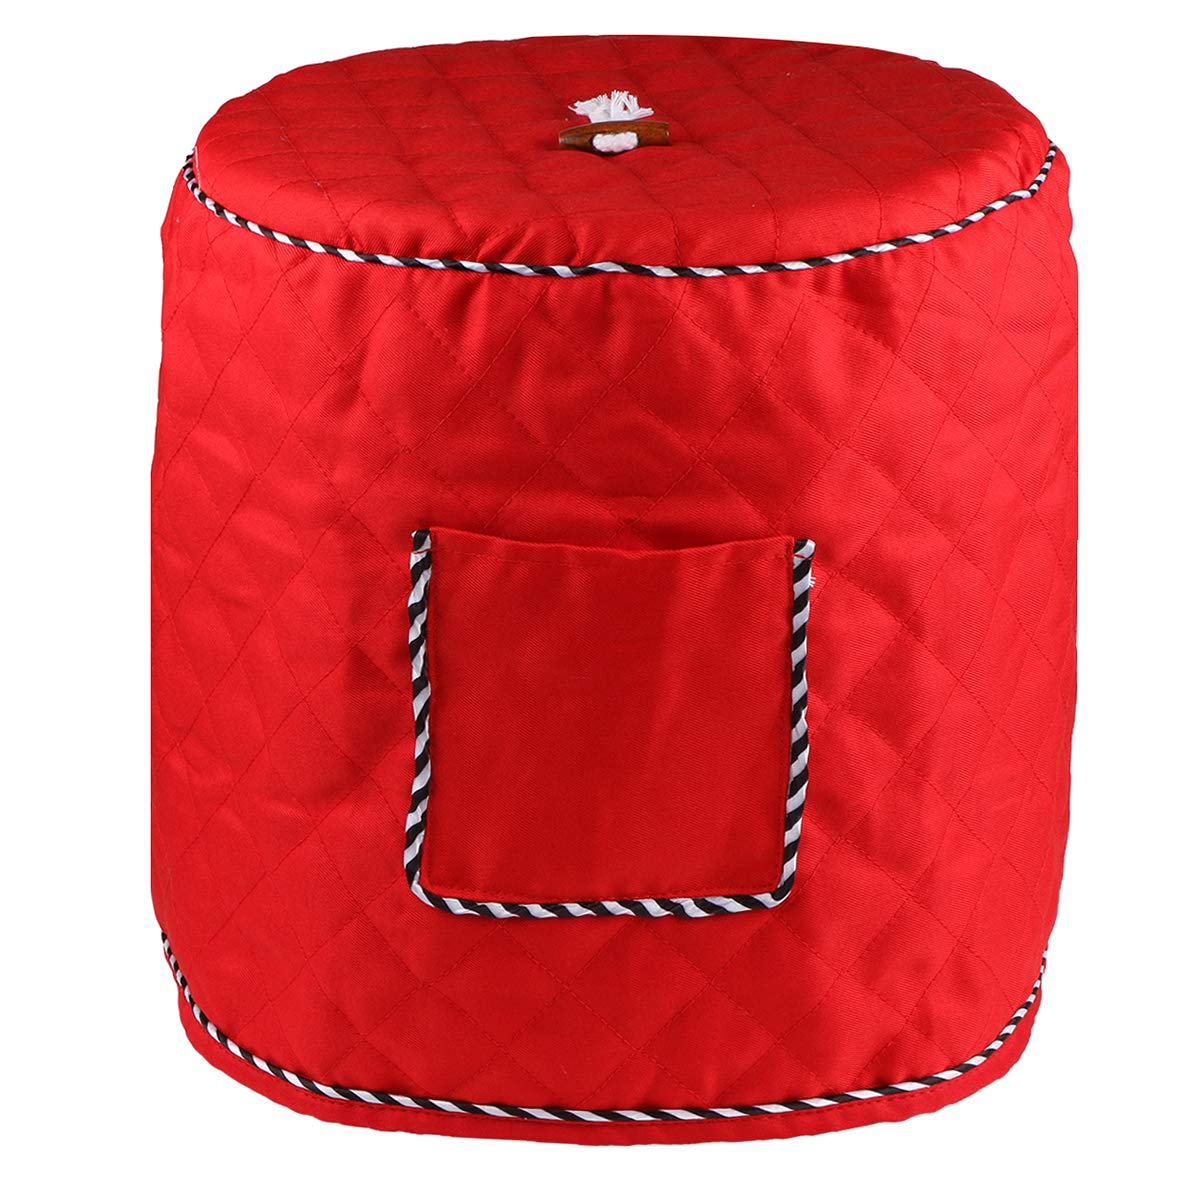 Dust Proof Cover for 6 Quart Instant Pot and Electric Pressure Cooker,Evermarket Decorative Appliance Cover with Pocket for Accessories,Red